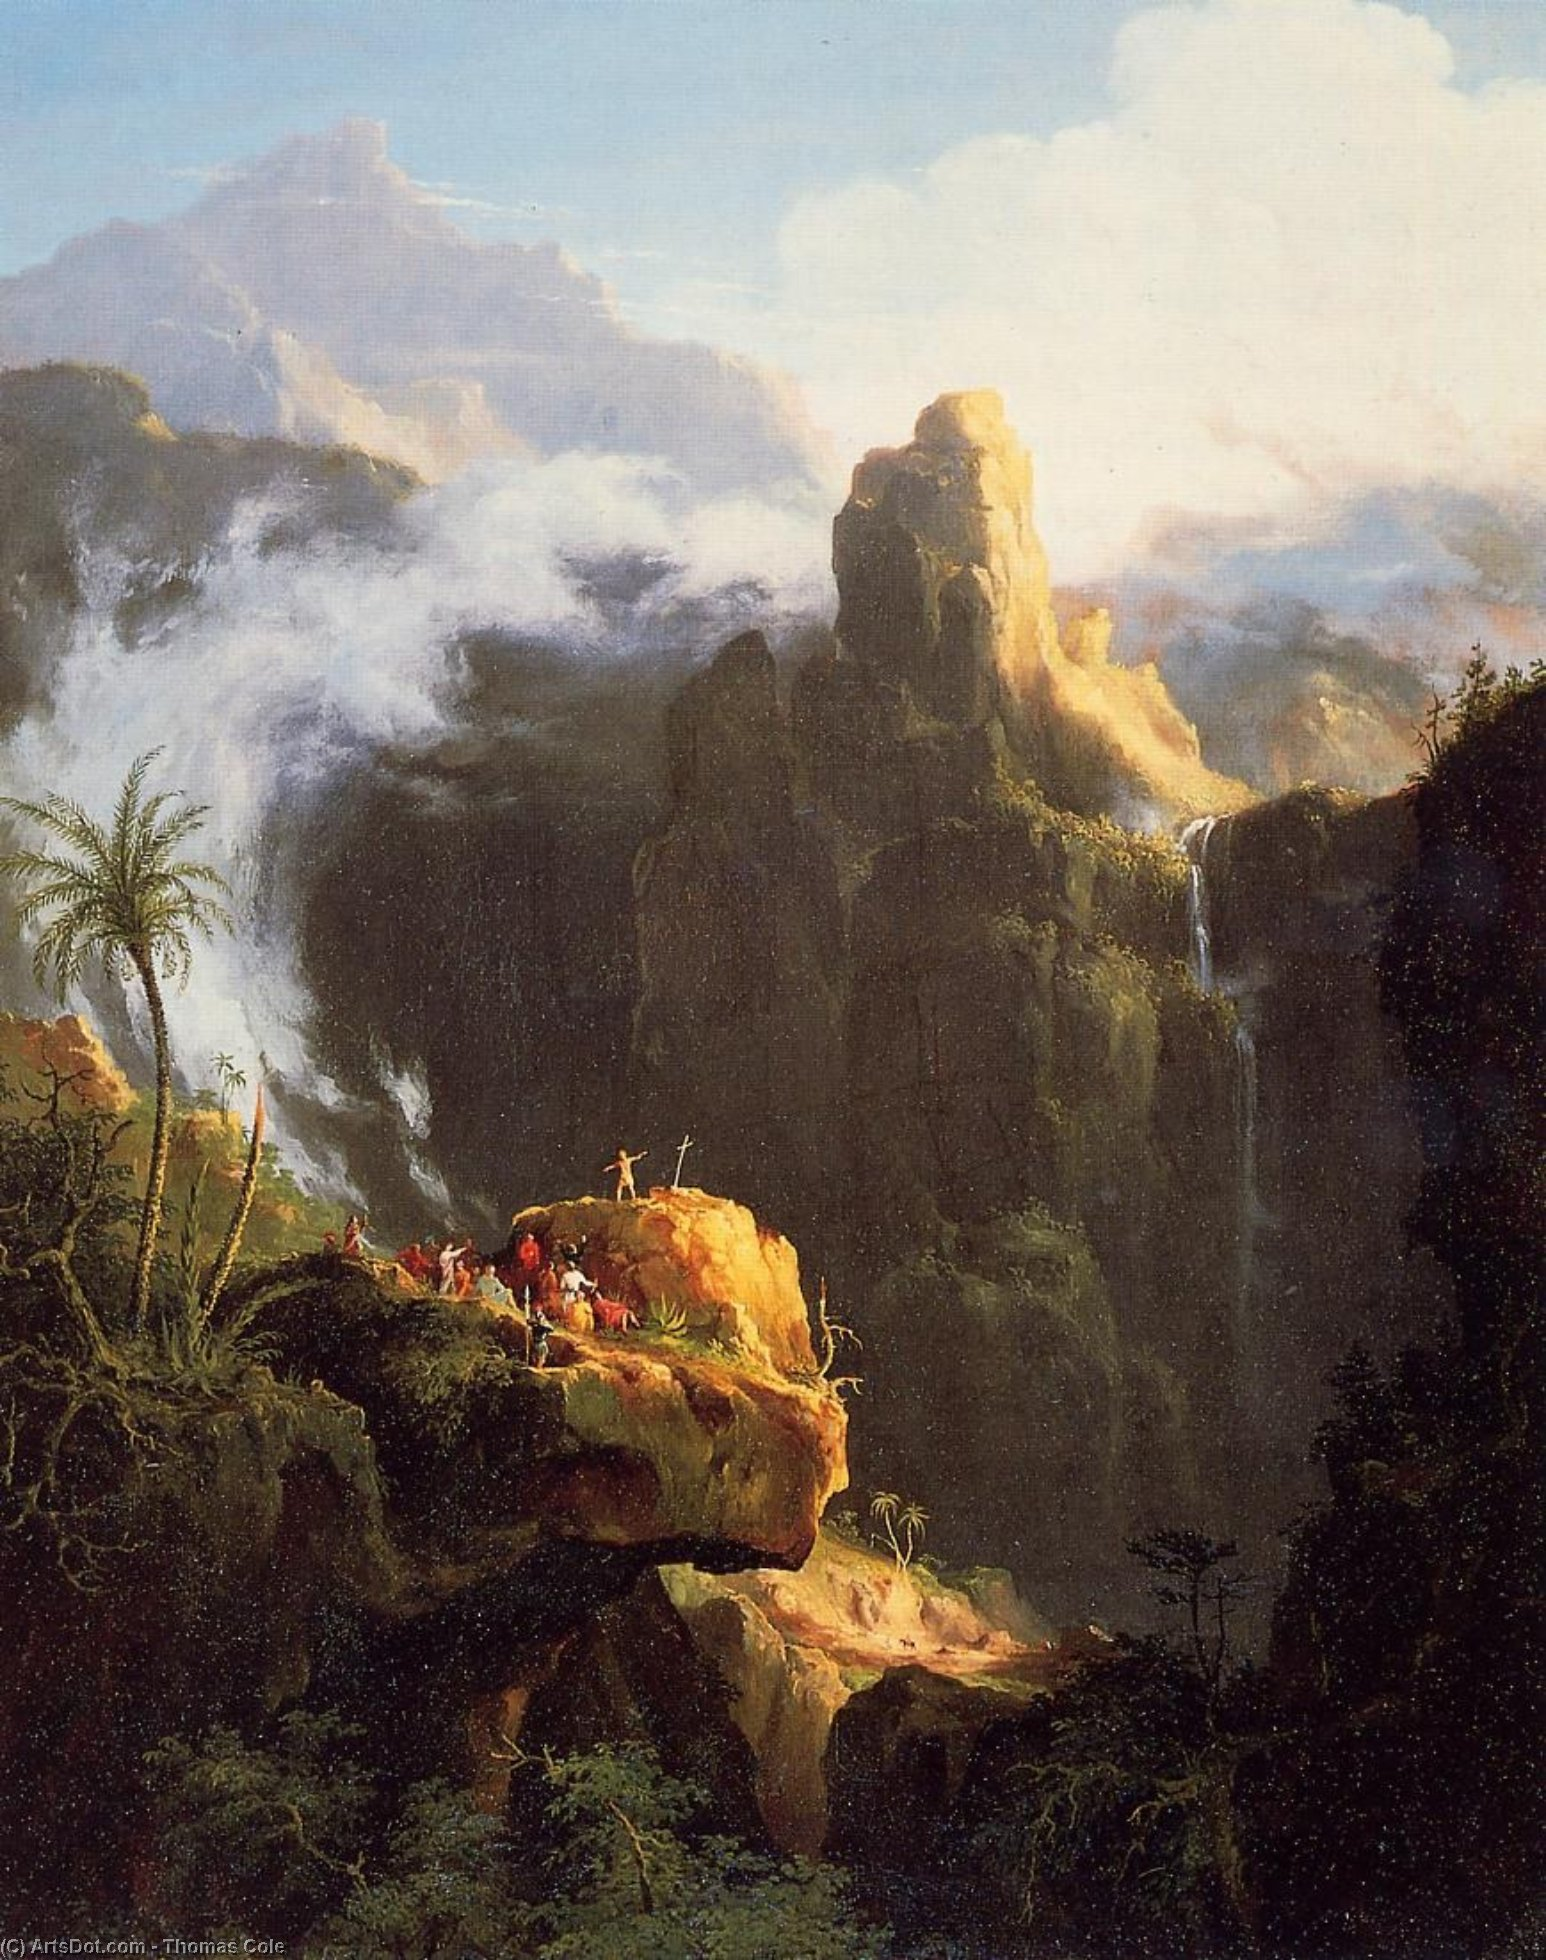 Landscape Composition, Saint John in the Wilderness, Oil by Thomas Cole (1801-1848, United Kingdom)